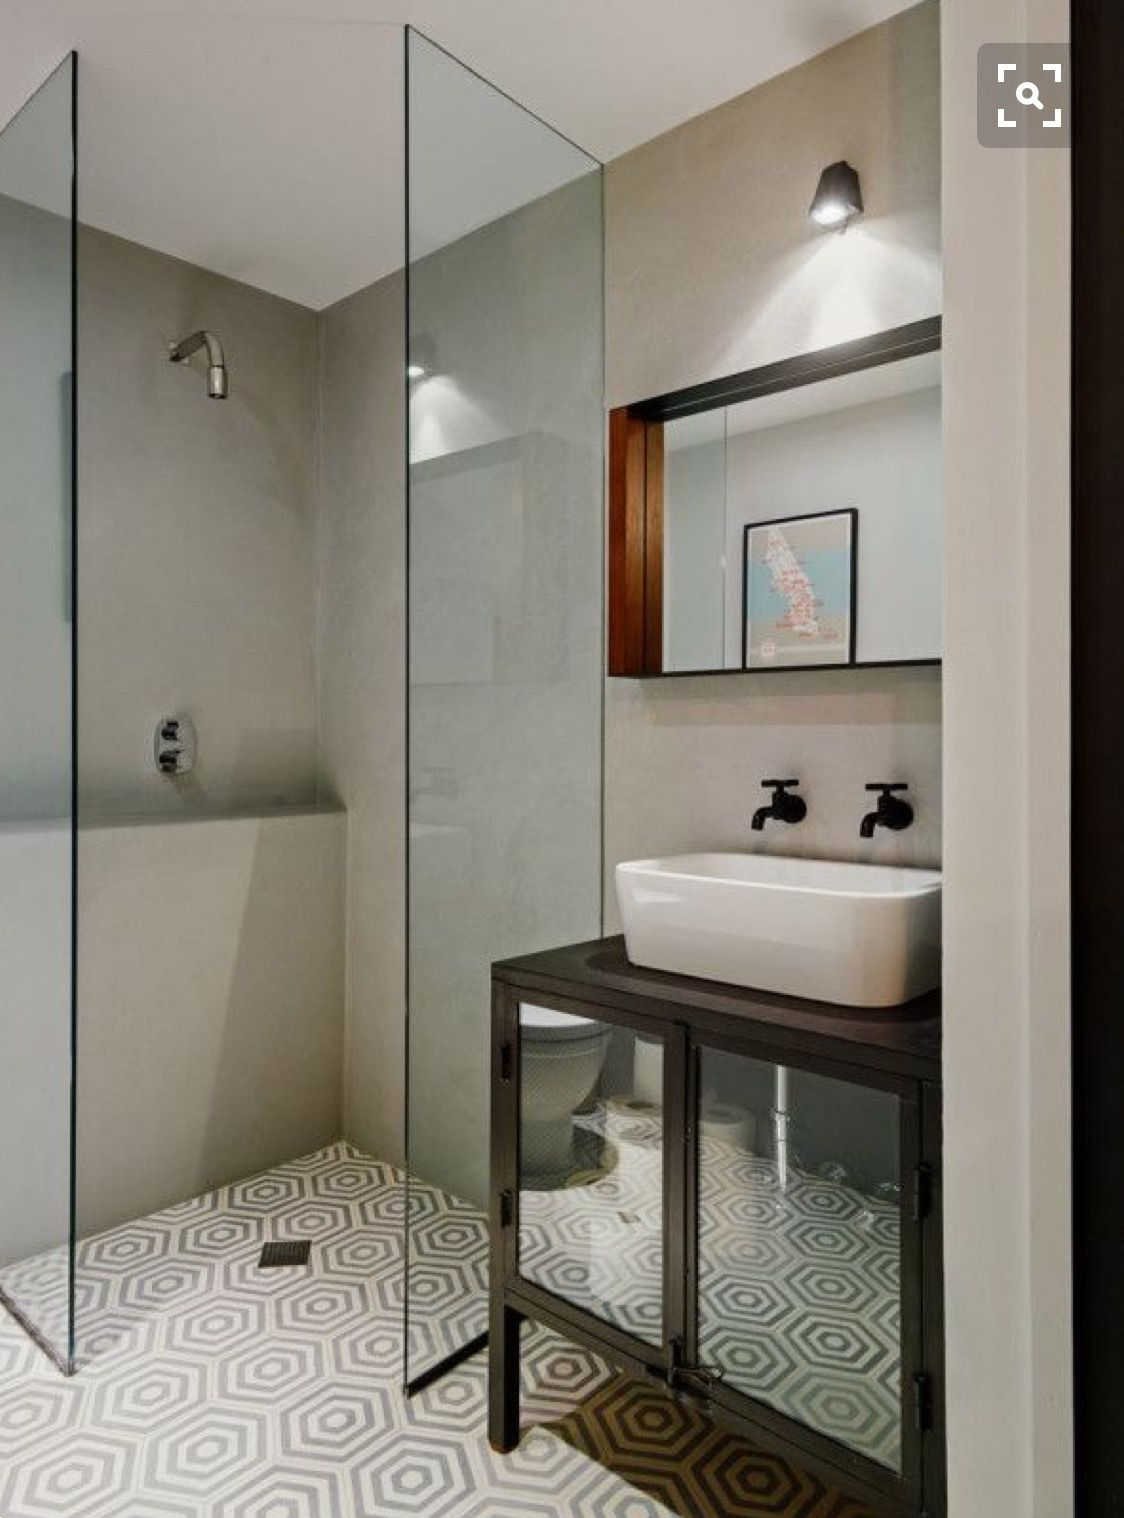 Kleines Bad Bodenfliesen Pin By Natasha Mckenna On Bathrooms Pinterest Badezimmer Bad